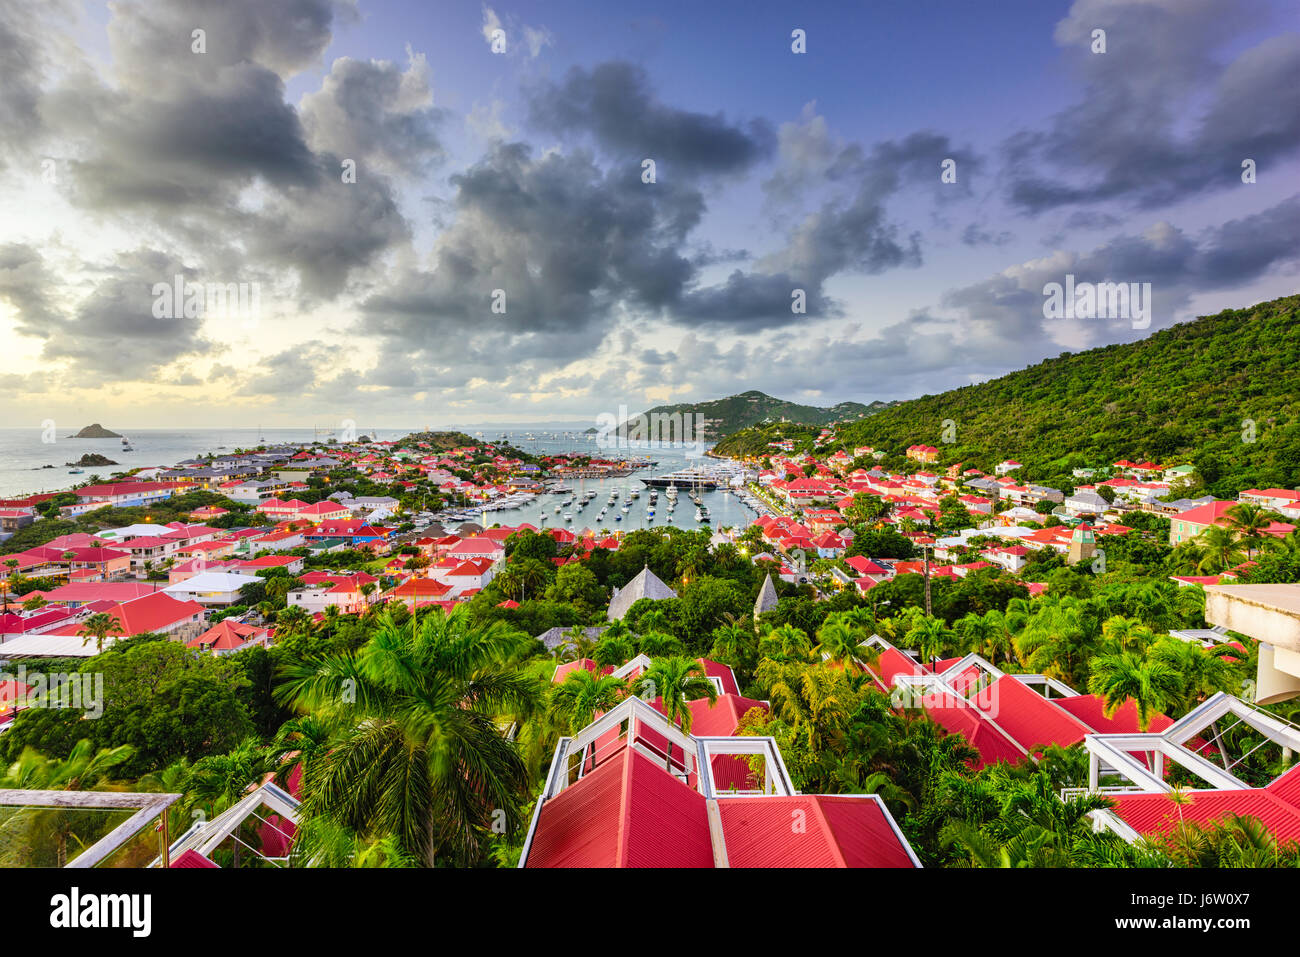 Saint Barthelemy skyline and harbor in the Caribbean. - Stock Image